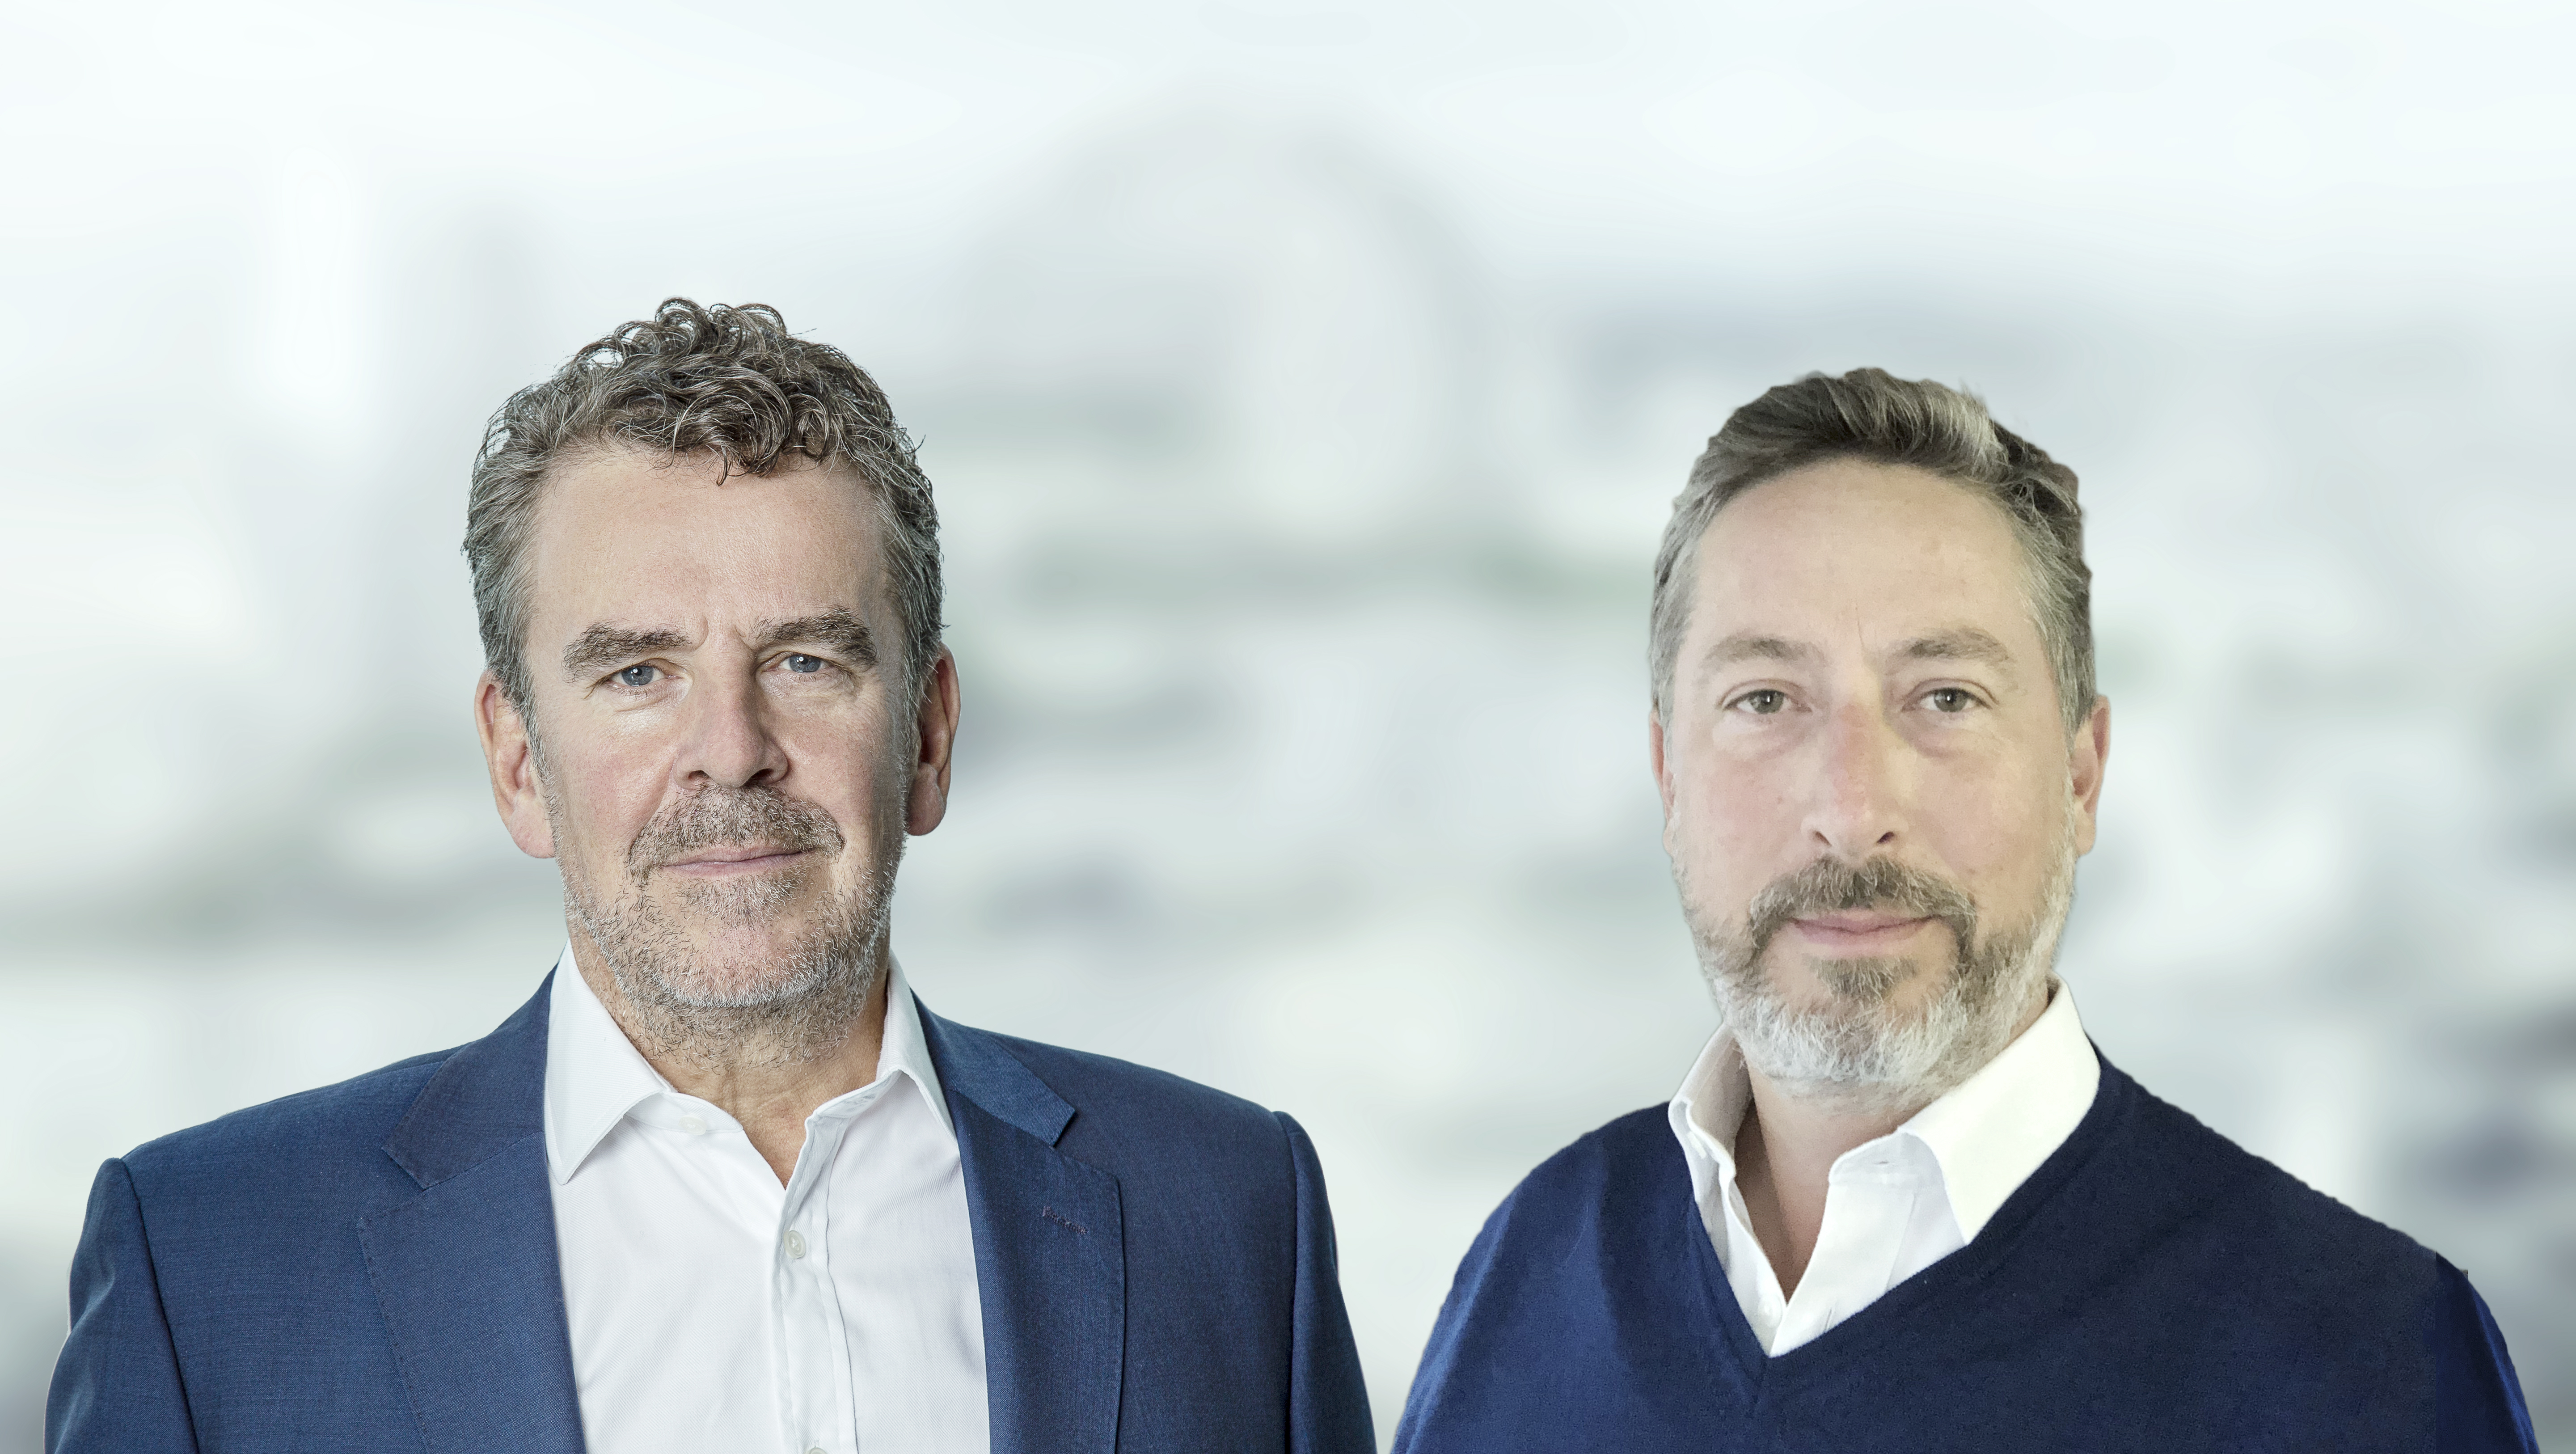 Matt Paskin and Theo Butt appointed CEO of Convex Re Limited (Bermuda) and CEO of Convex Insurance UK Limited respectively